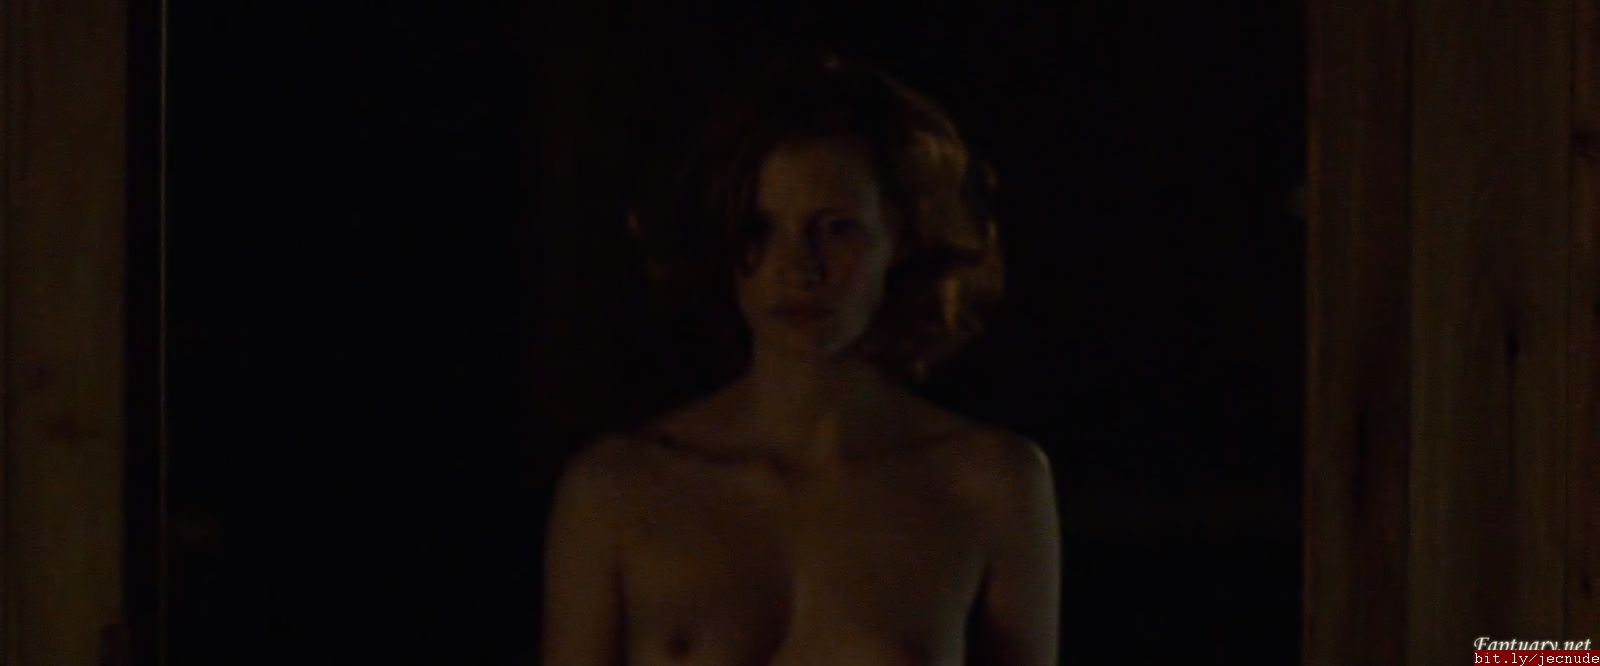 Nude pics of jessica chastain